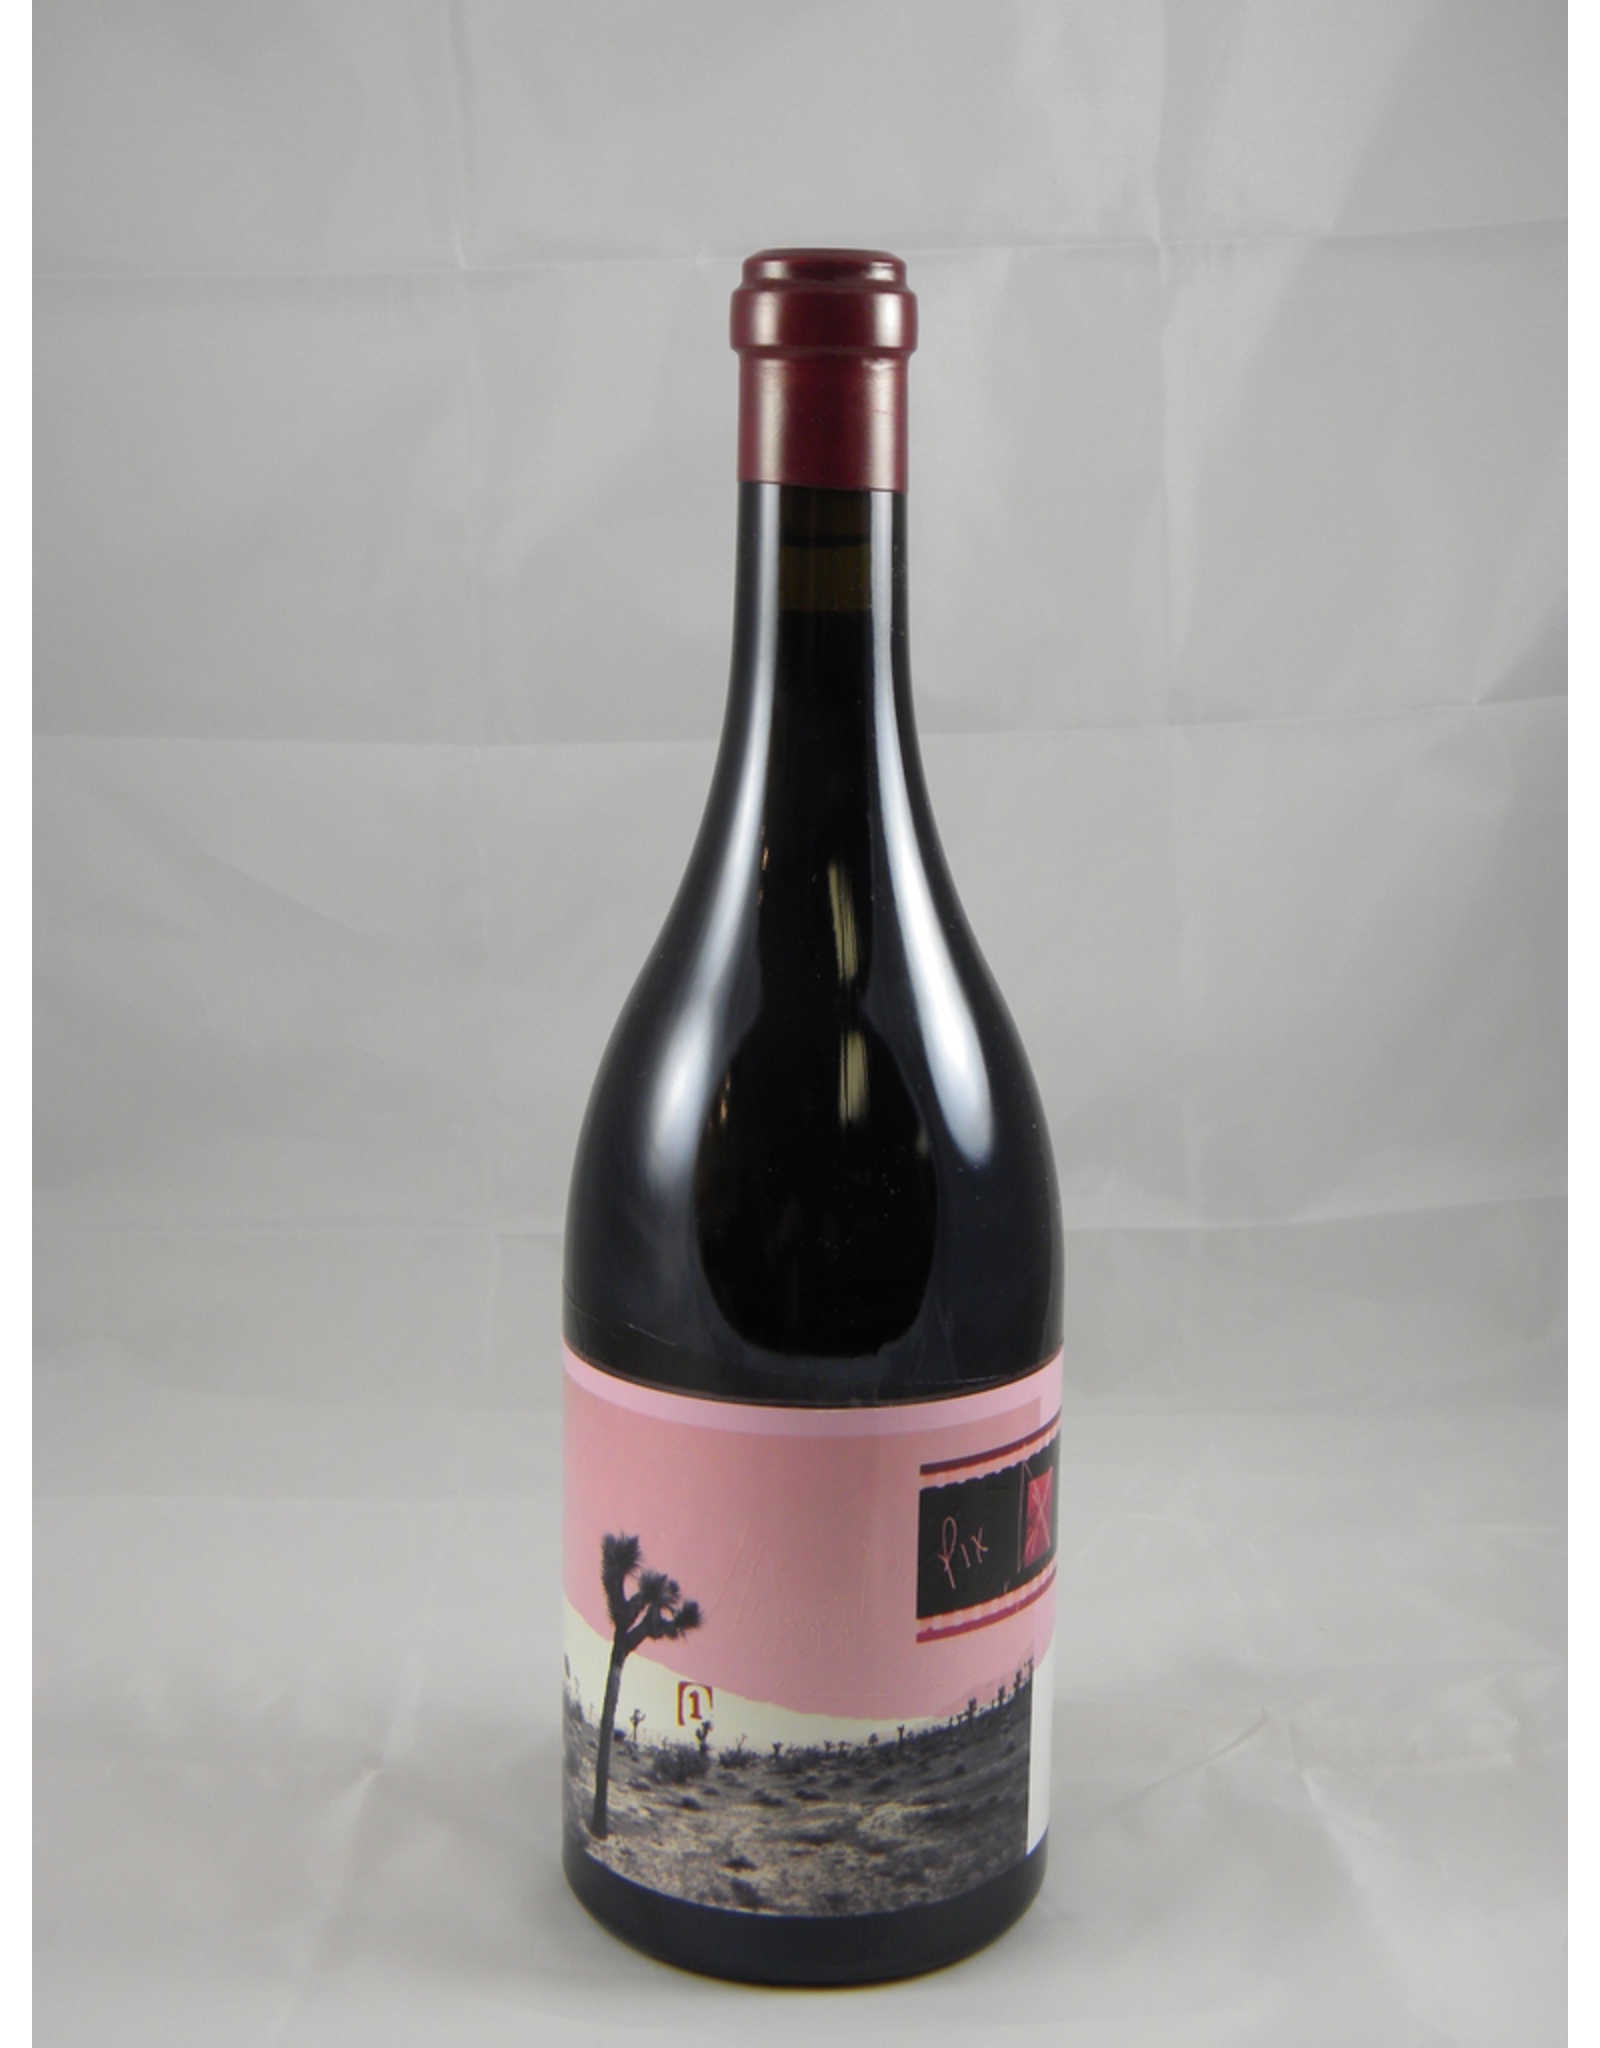 Orin Swift Orin Swift Red California Eight Years in the Desert 2018